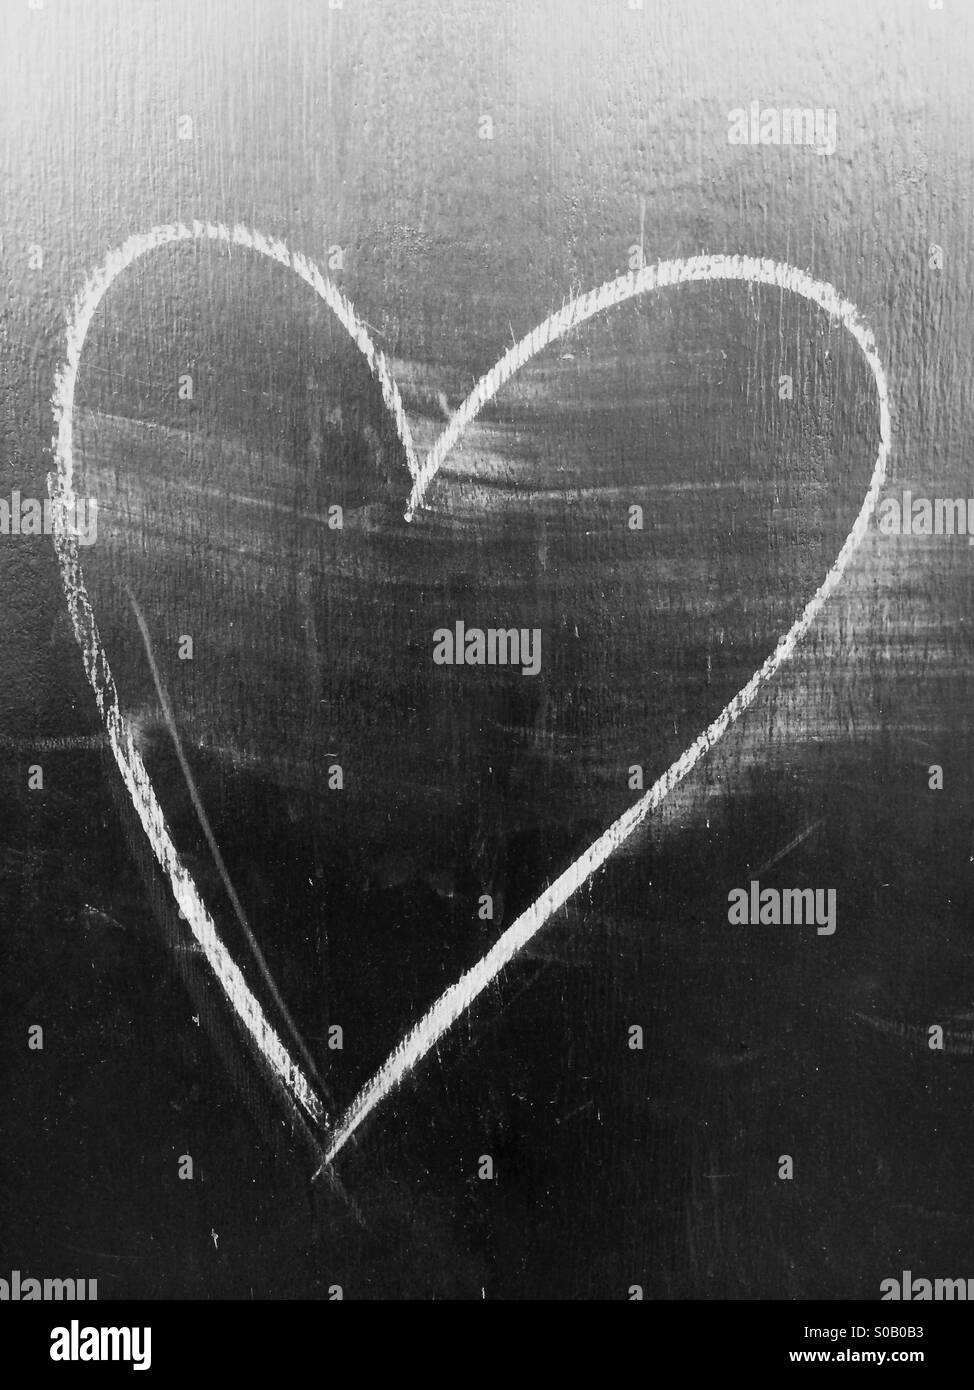 Heart shape graffiti in NYC drawn with chalk and slightly blurred. - Stock Image